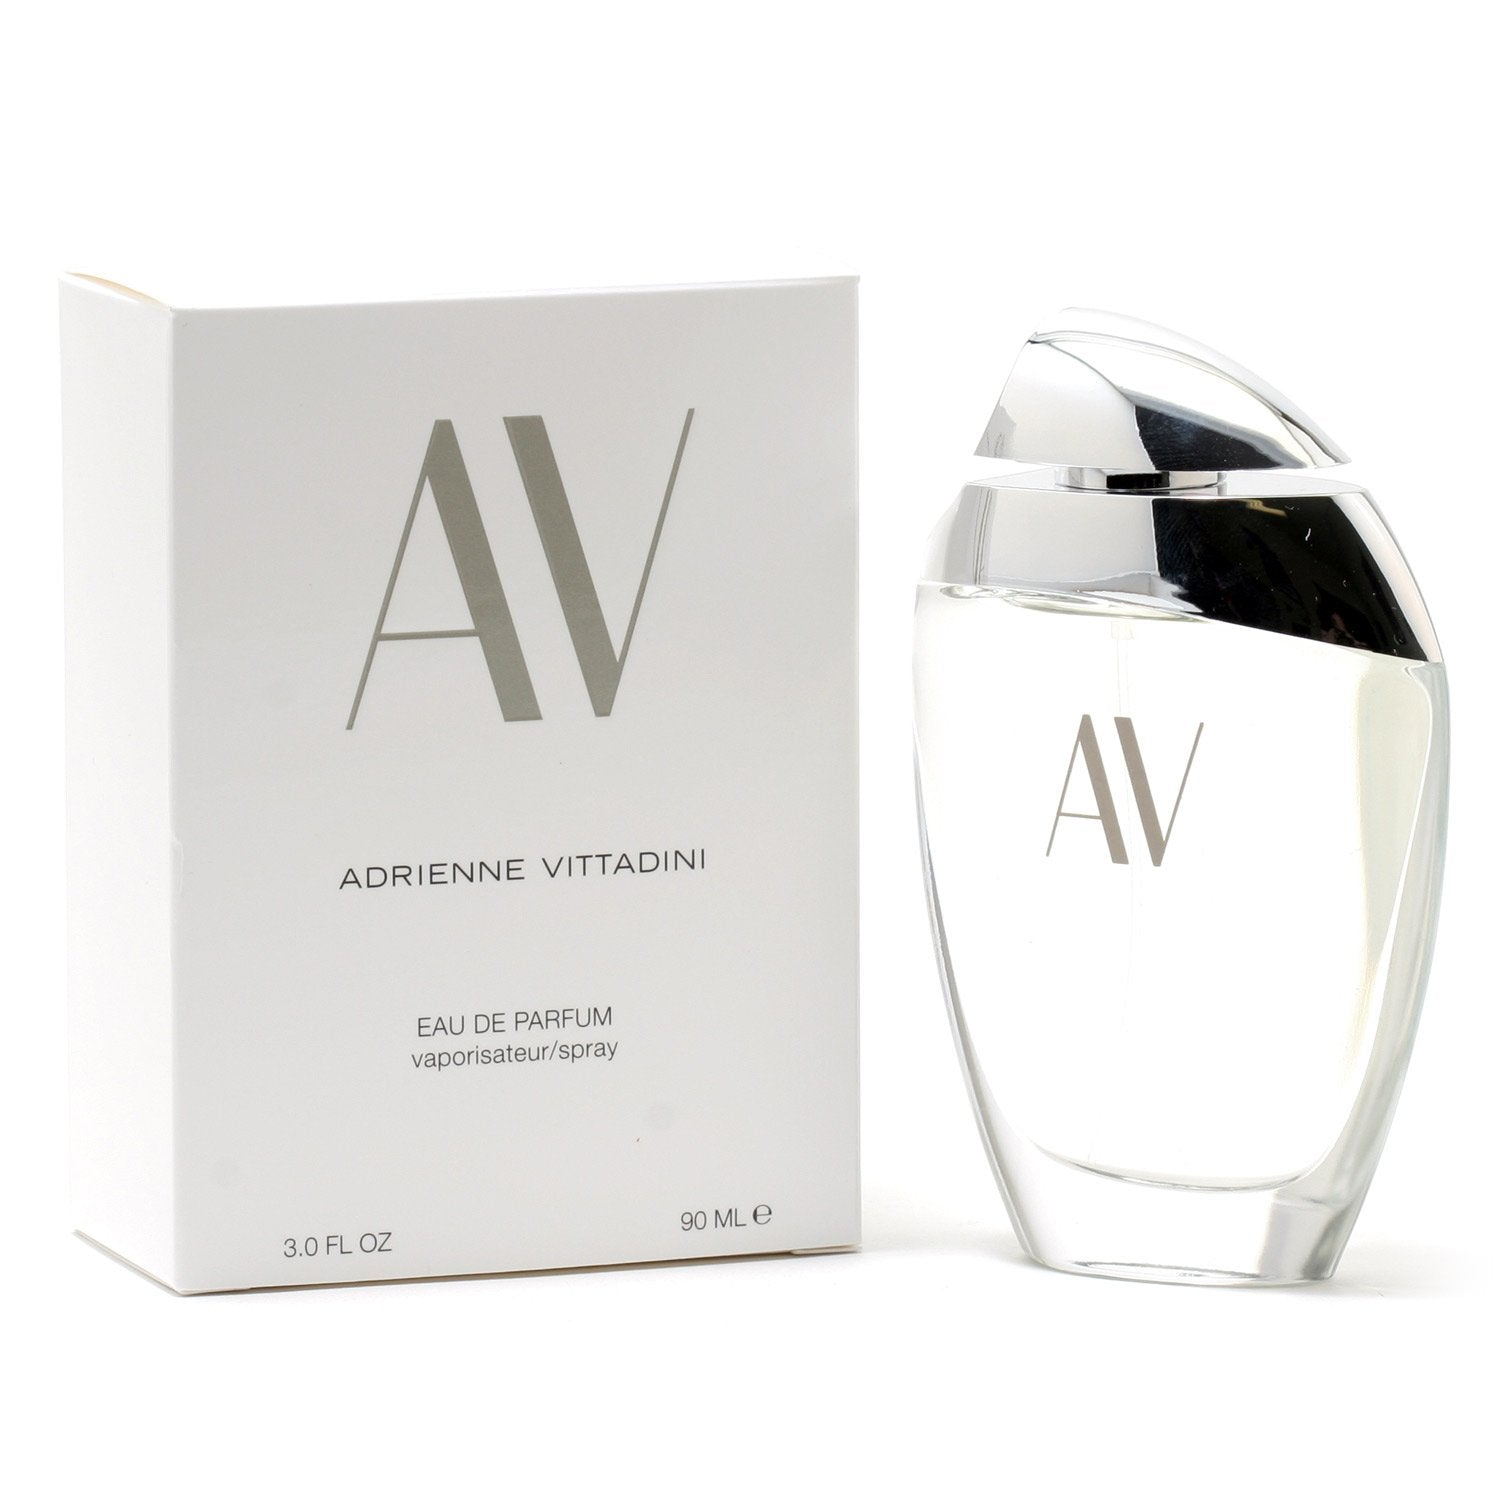 Perfume - AV FOR WOMEN BY ADRIENNE VITTADINI - EAU DE PARFUM SPRAY, 3.0 OZ